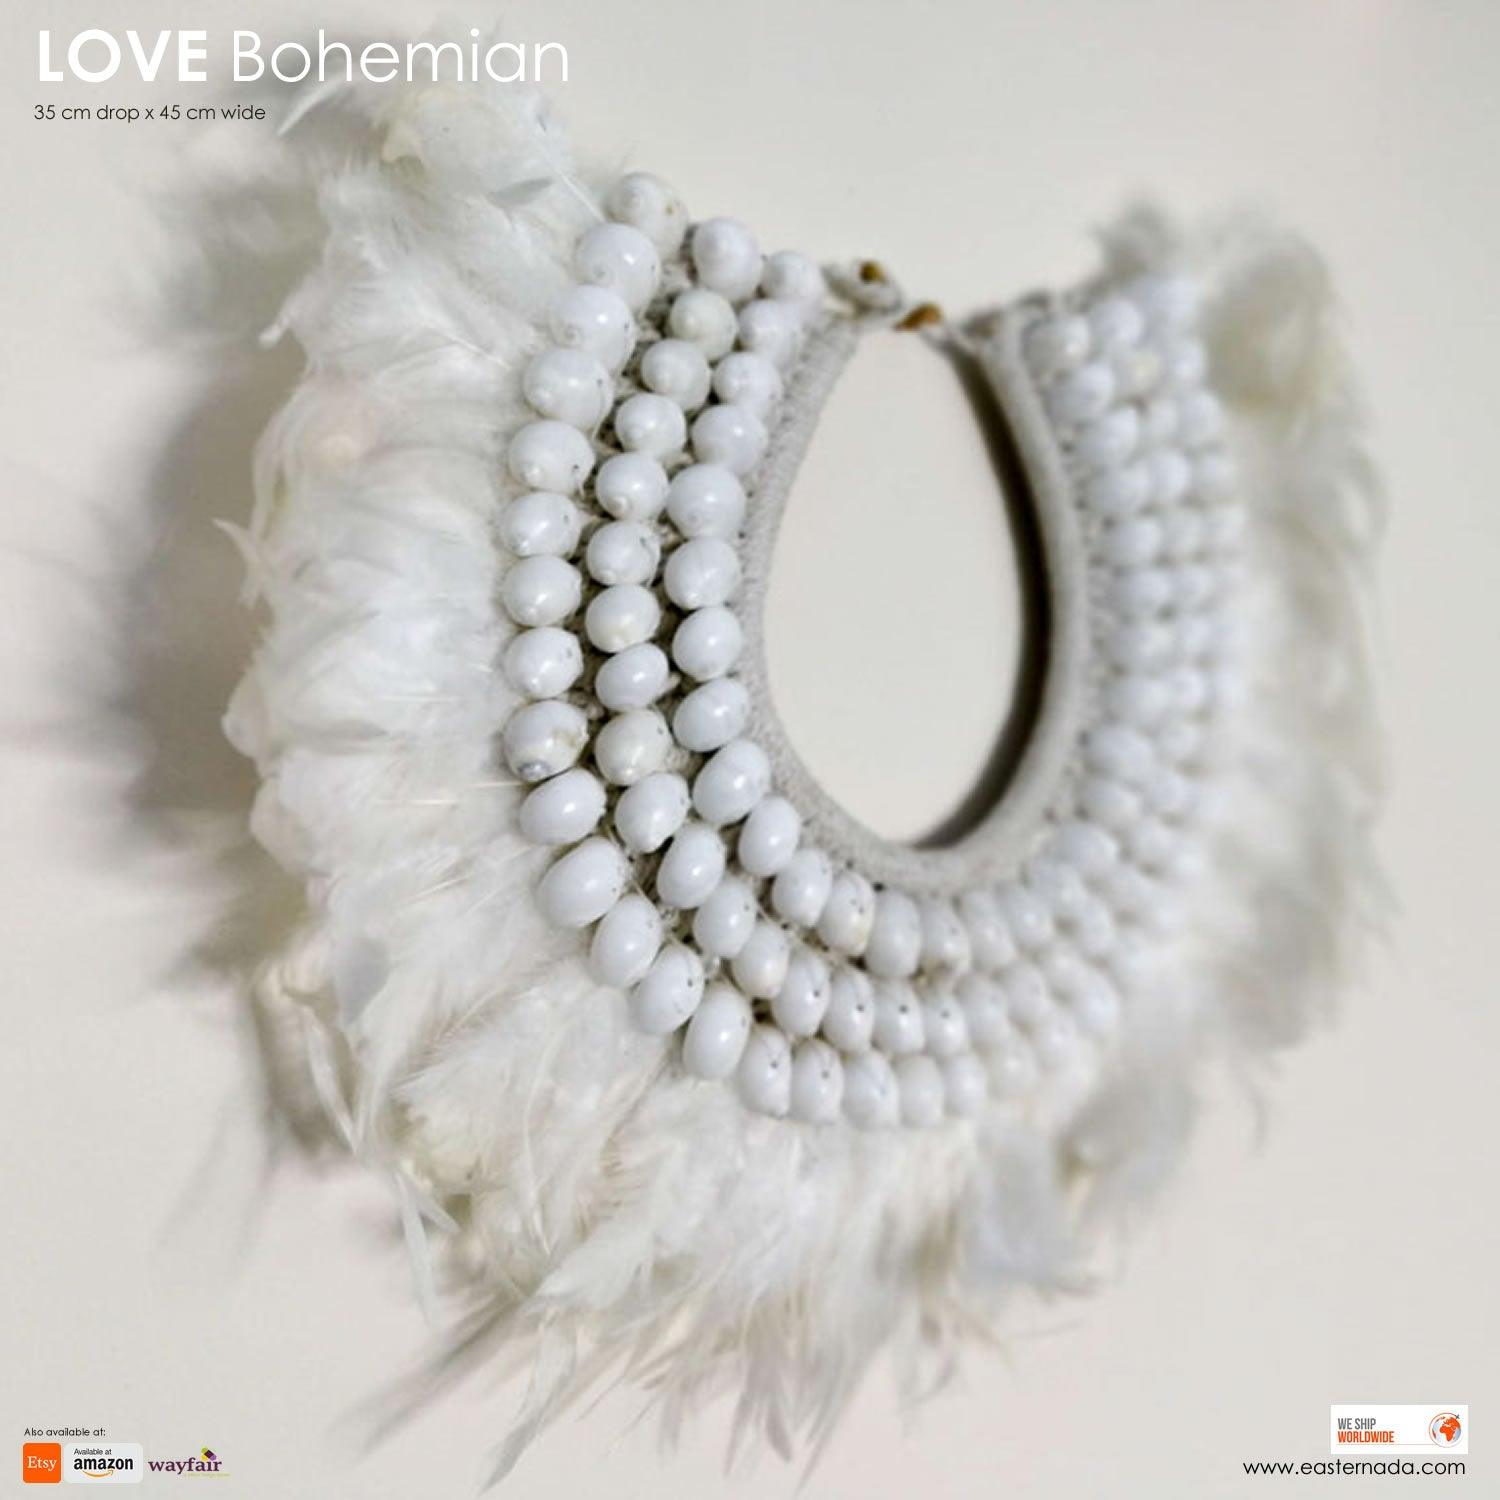 Boho Bohemian Style Feather Sea Shells Handmade Decorative Costume Macrame Style Large Necklace Juju